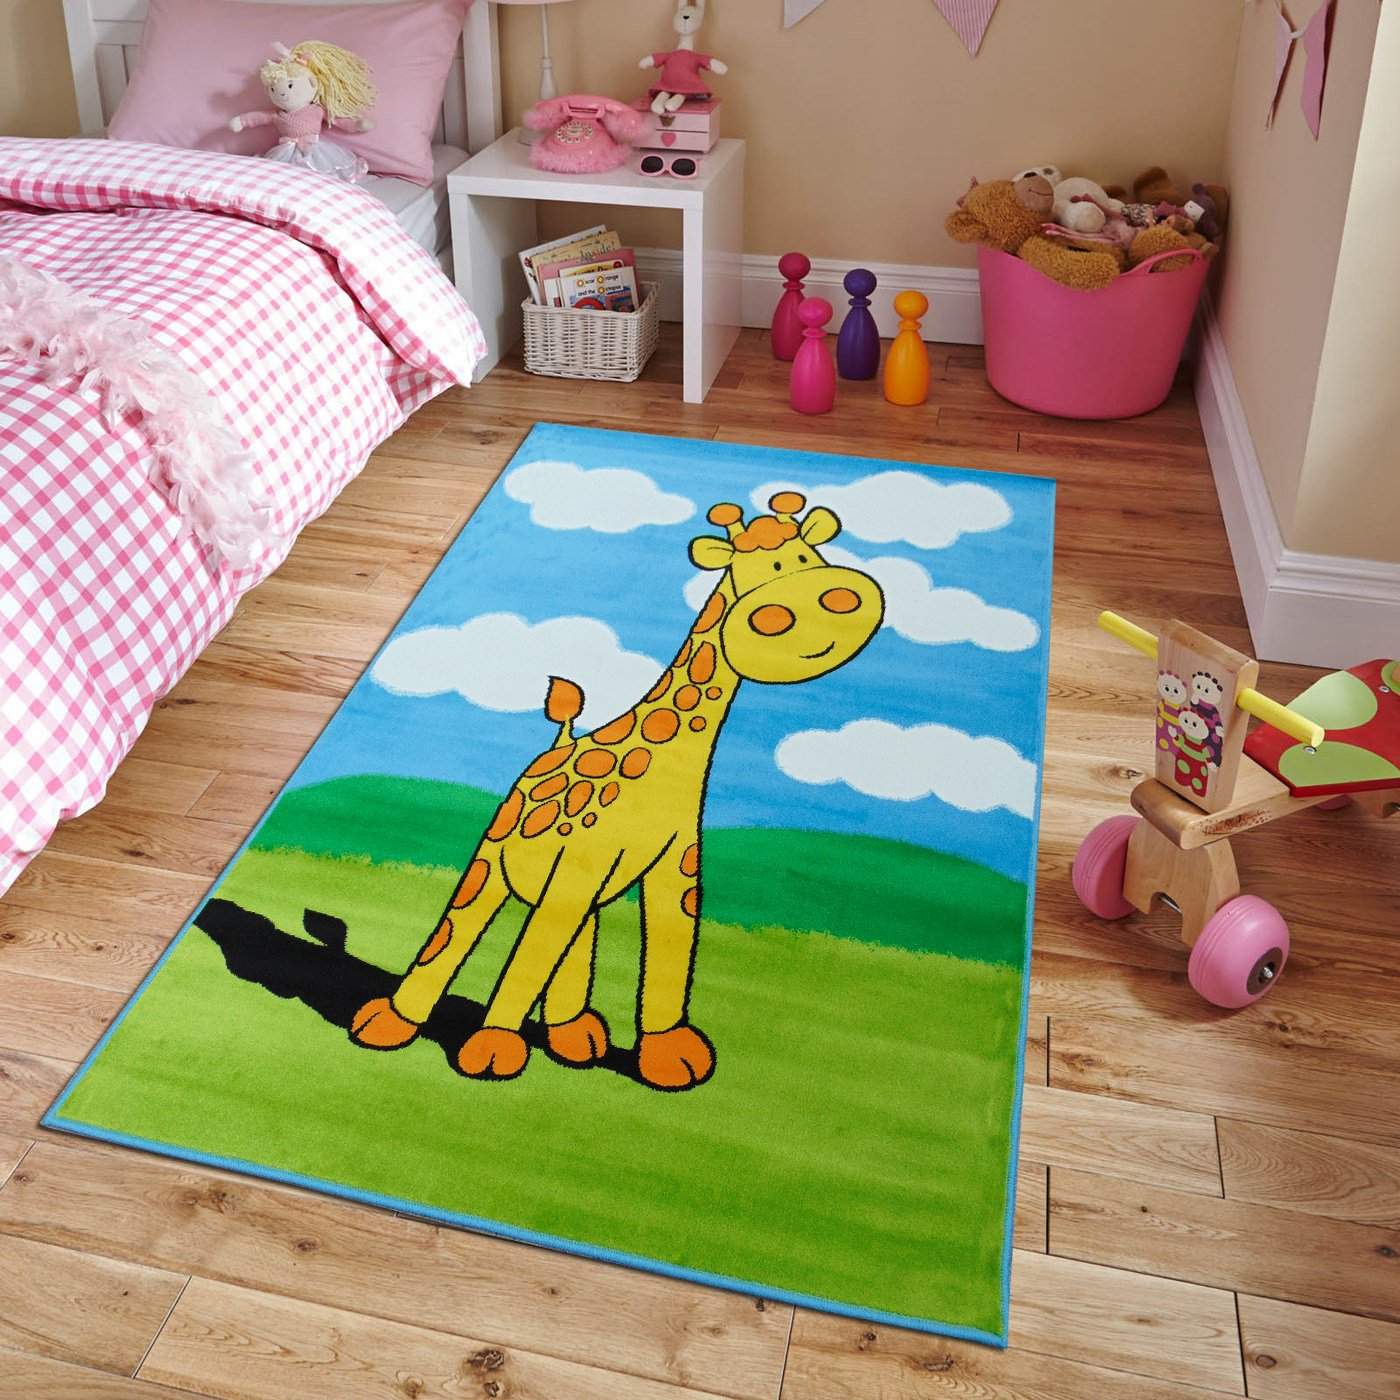 New Soft Adorable Kids Rugs Contemporary Playtime Giraffe Island Kids Area Rug, Large 5×7 Kids Carpet Playroom